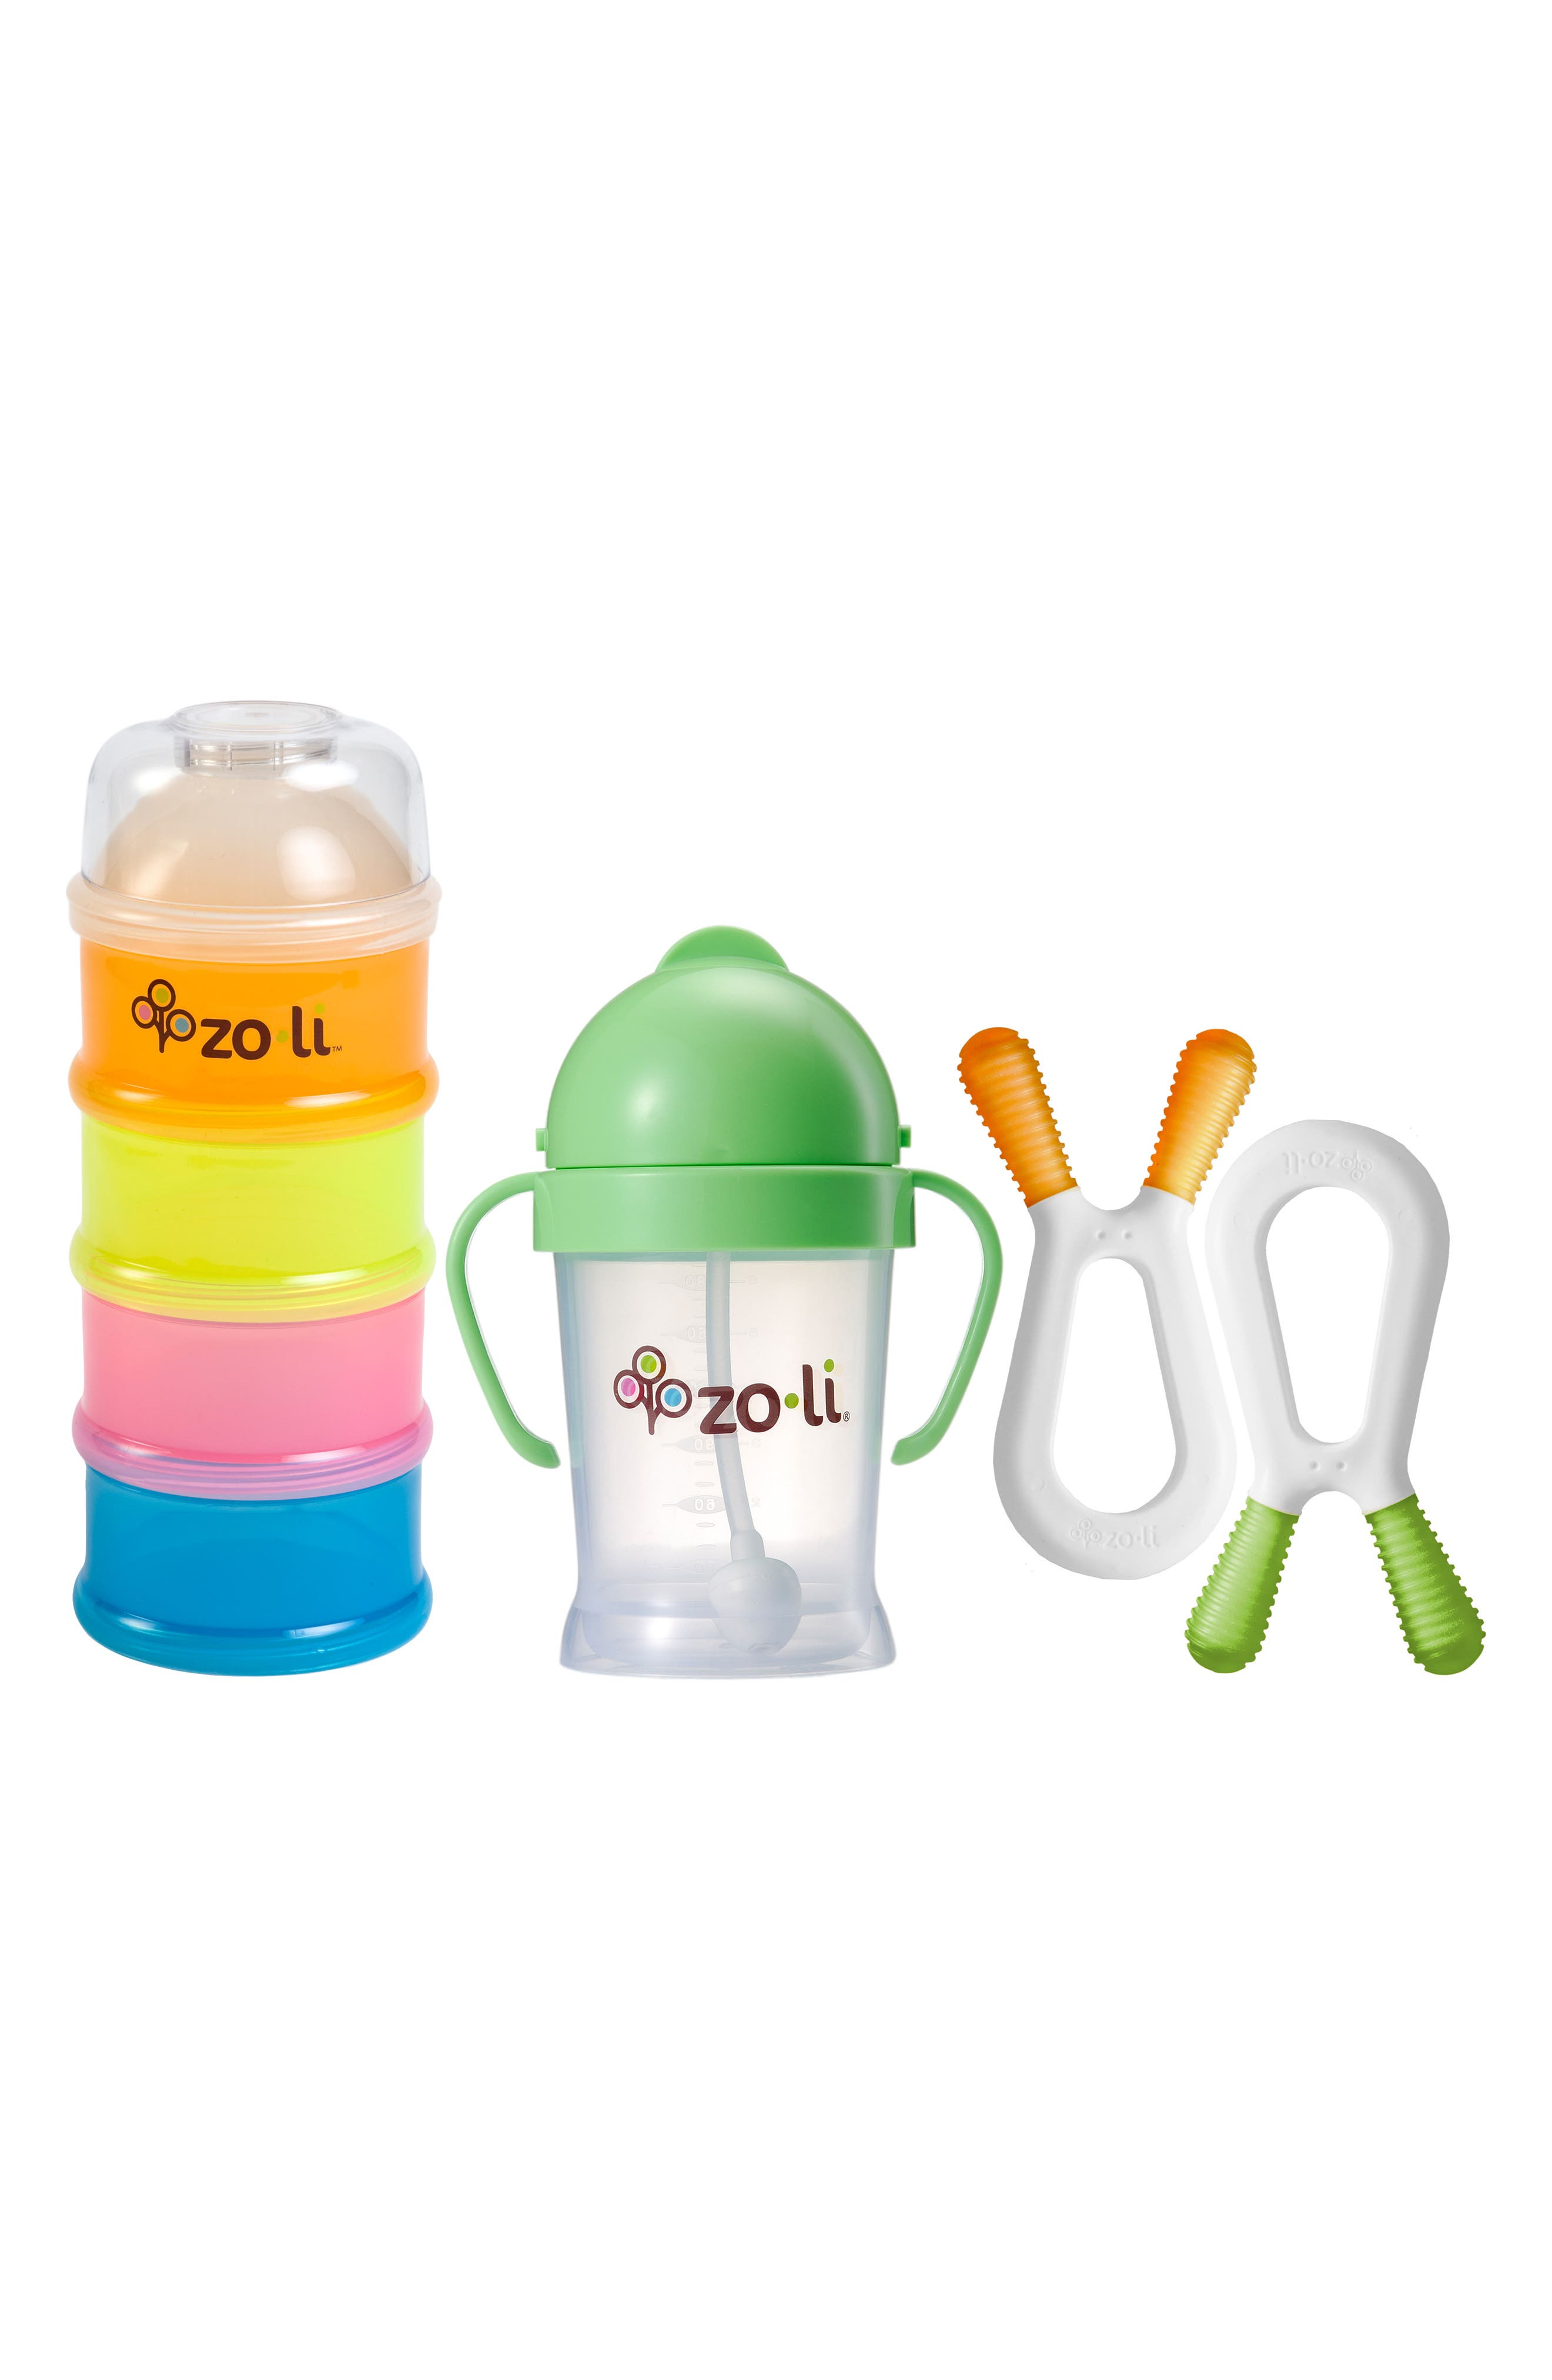 Baby on the Go Essentials 5-Piece Set,                             Main thumbnail 1, color,                             300